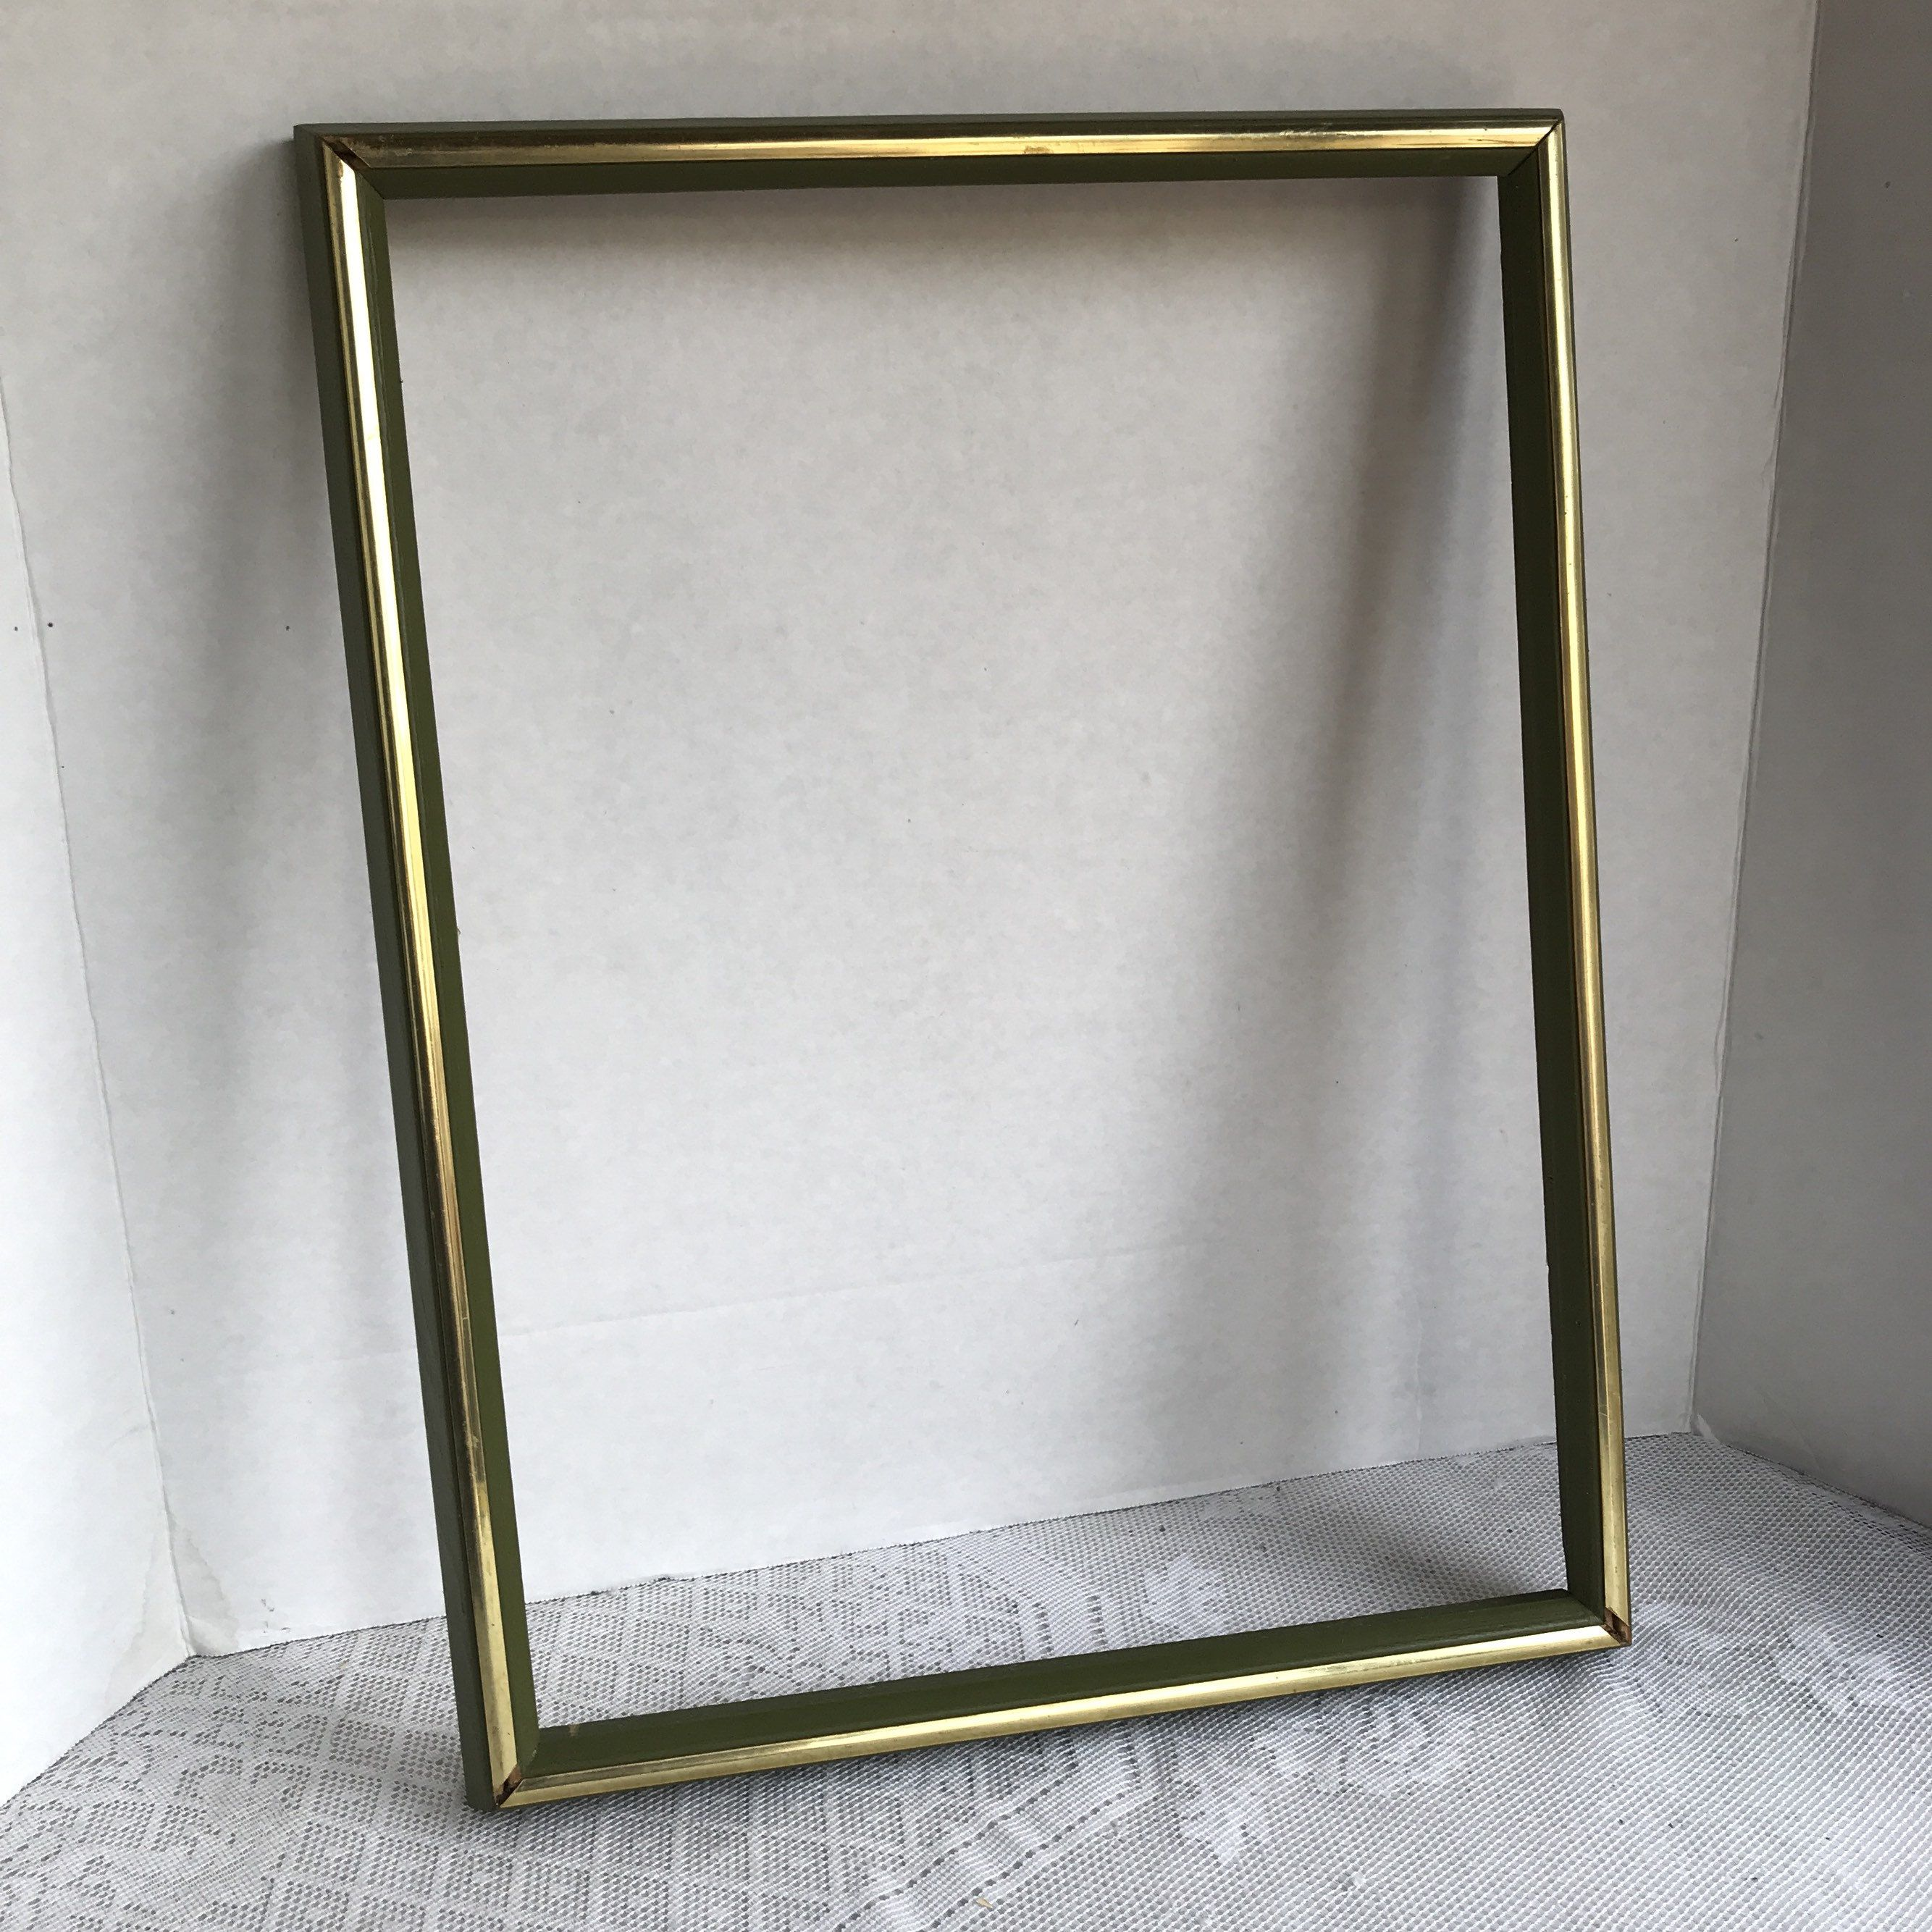 Vintage Green And Gold Wooden Picture Frame 12 X 16 Inch Wood Frame Made In Mexico With Images Wooden Picture Wooden Picture Frames Picture Frames